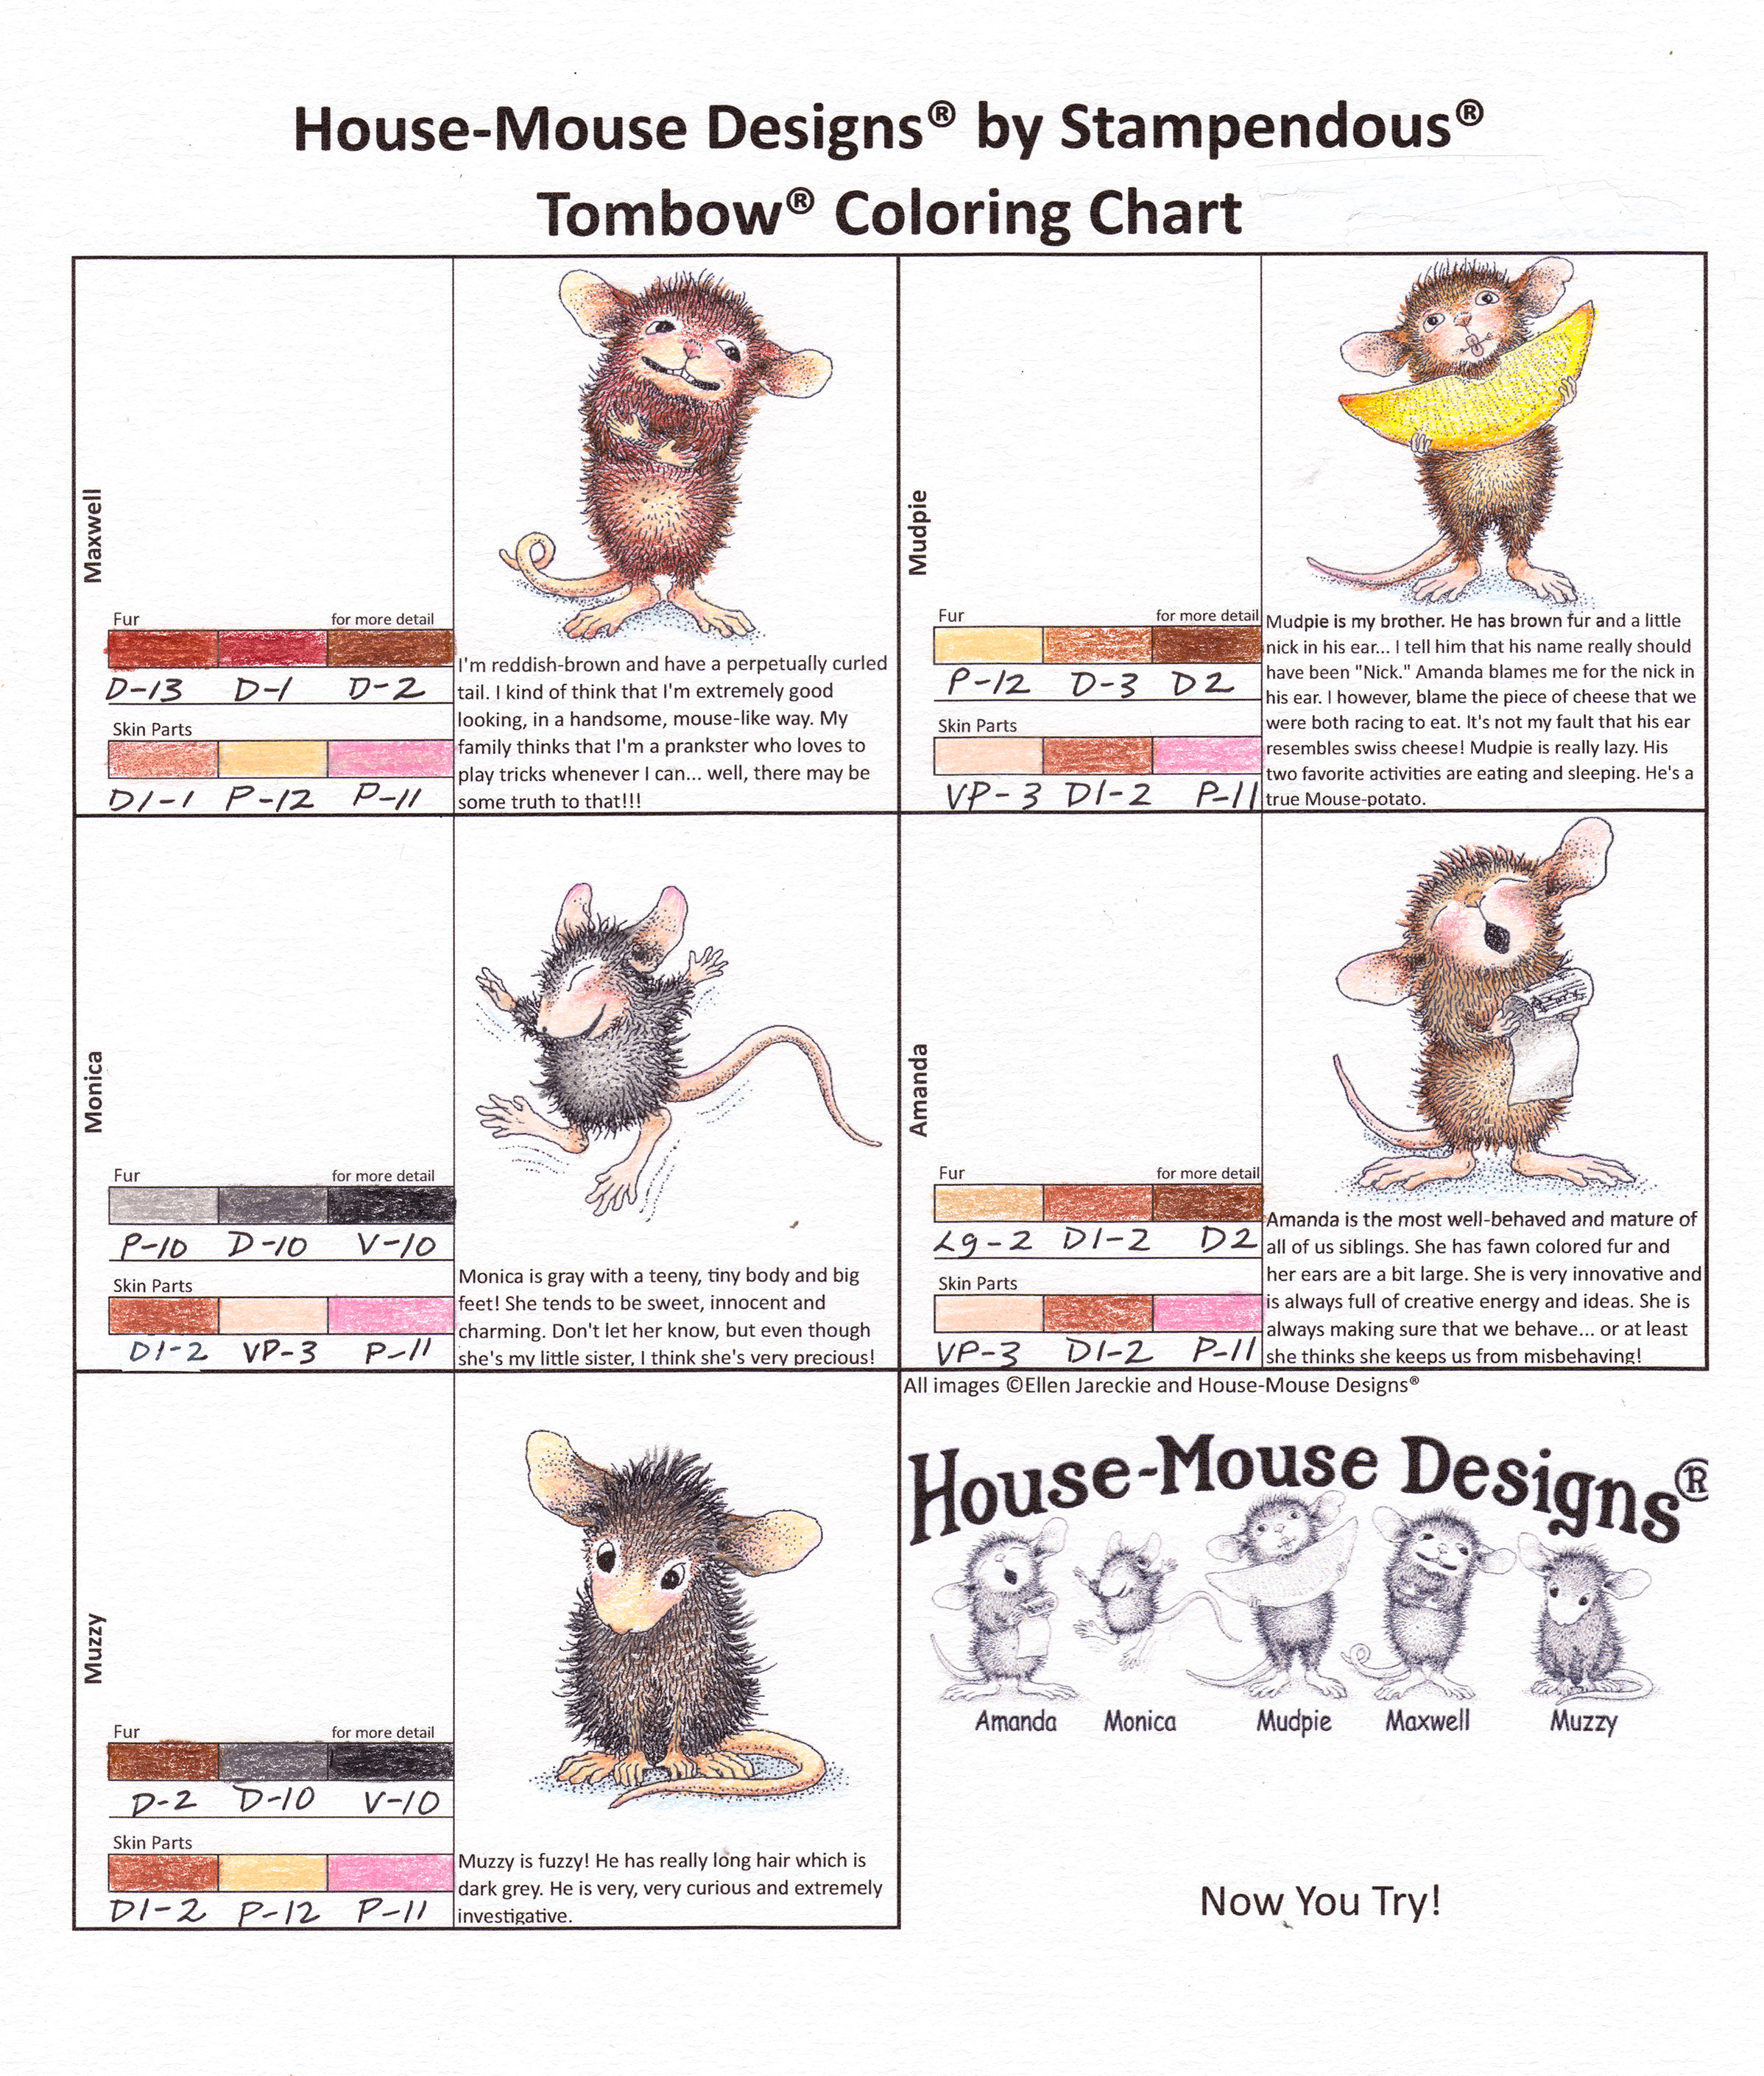 Coloring House-Mouse Designs®